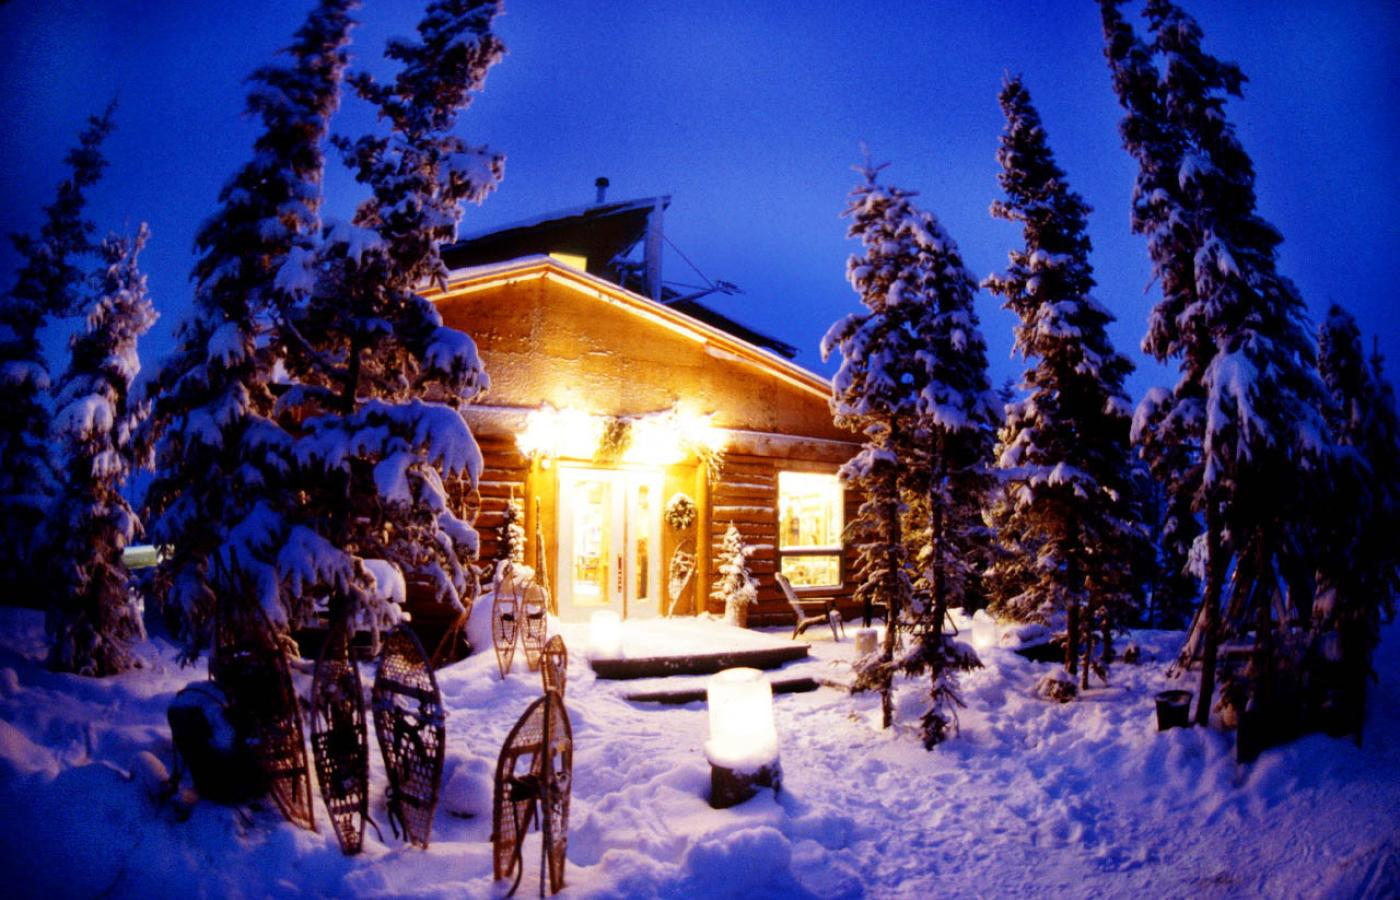 Blachford Lake Lodge is only a bush plane flight away from Yellowknife, Northwest Territories, Canada